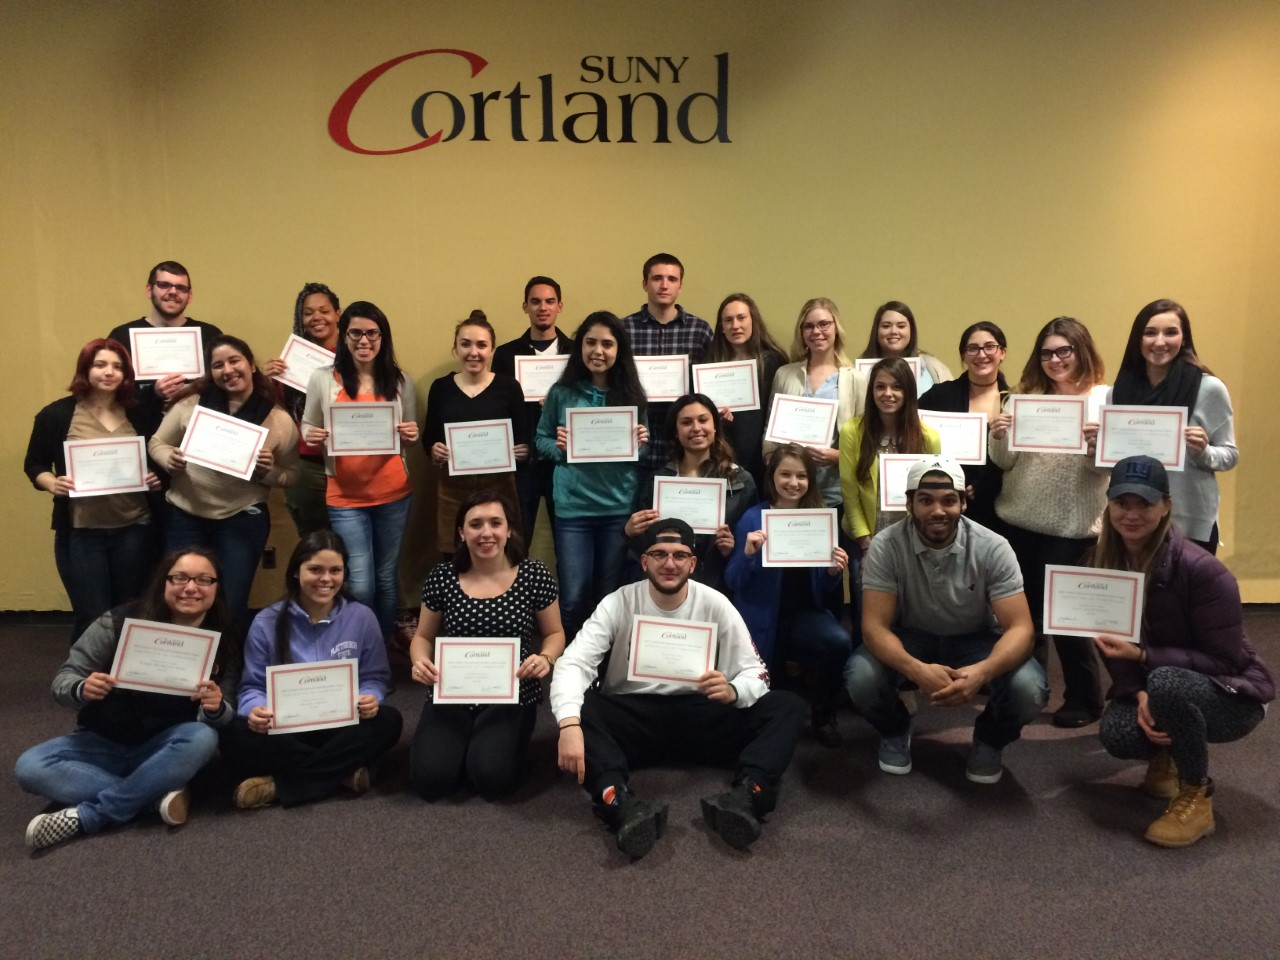 Students hold up certificates for completing Leadership Series